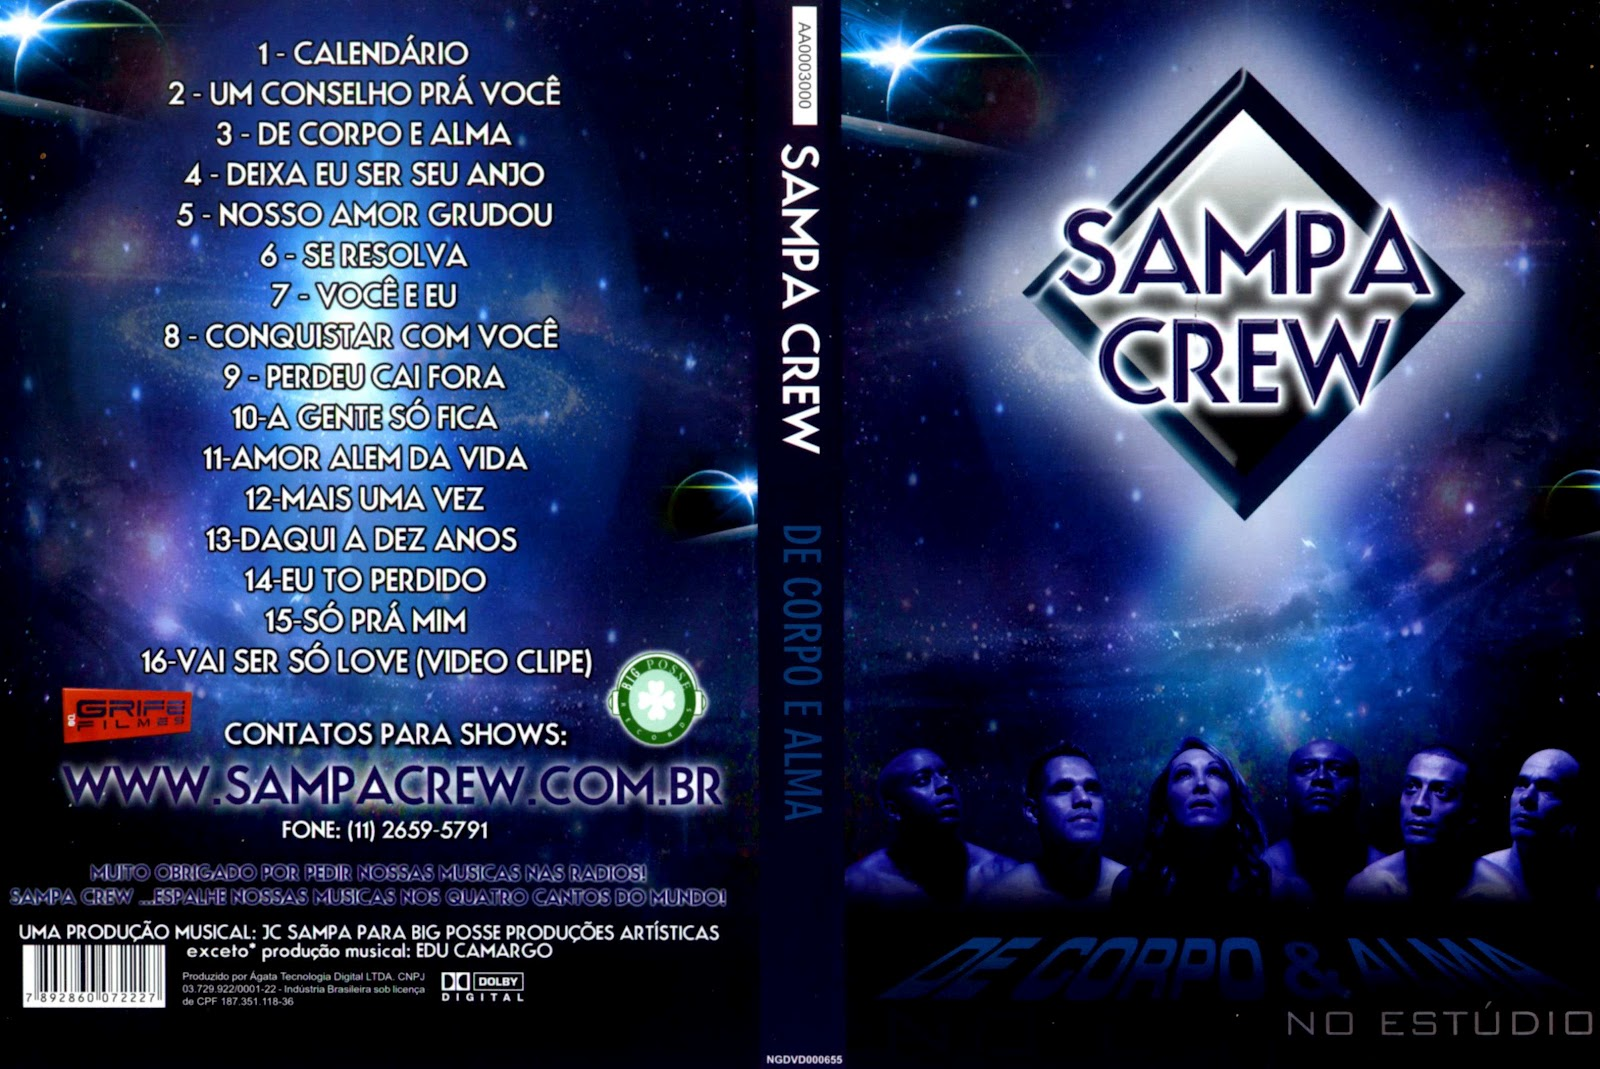 videos do sampa crew para